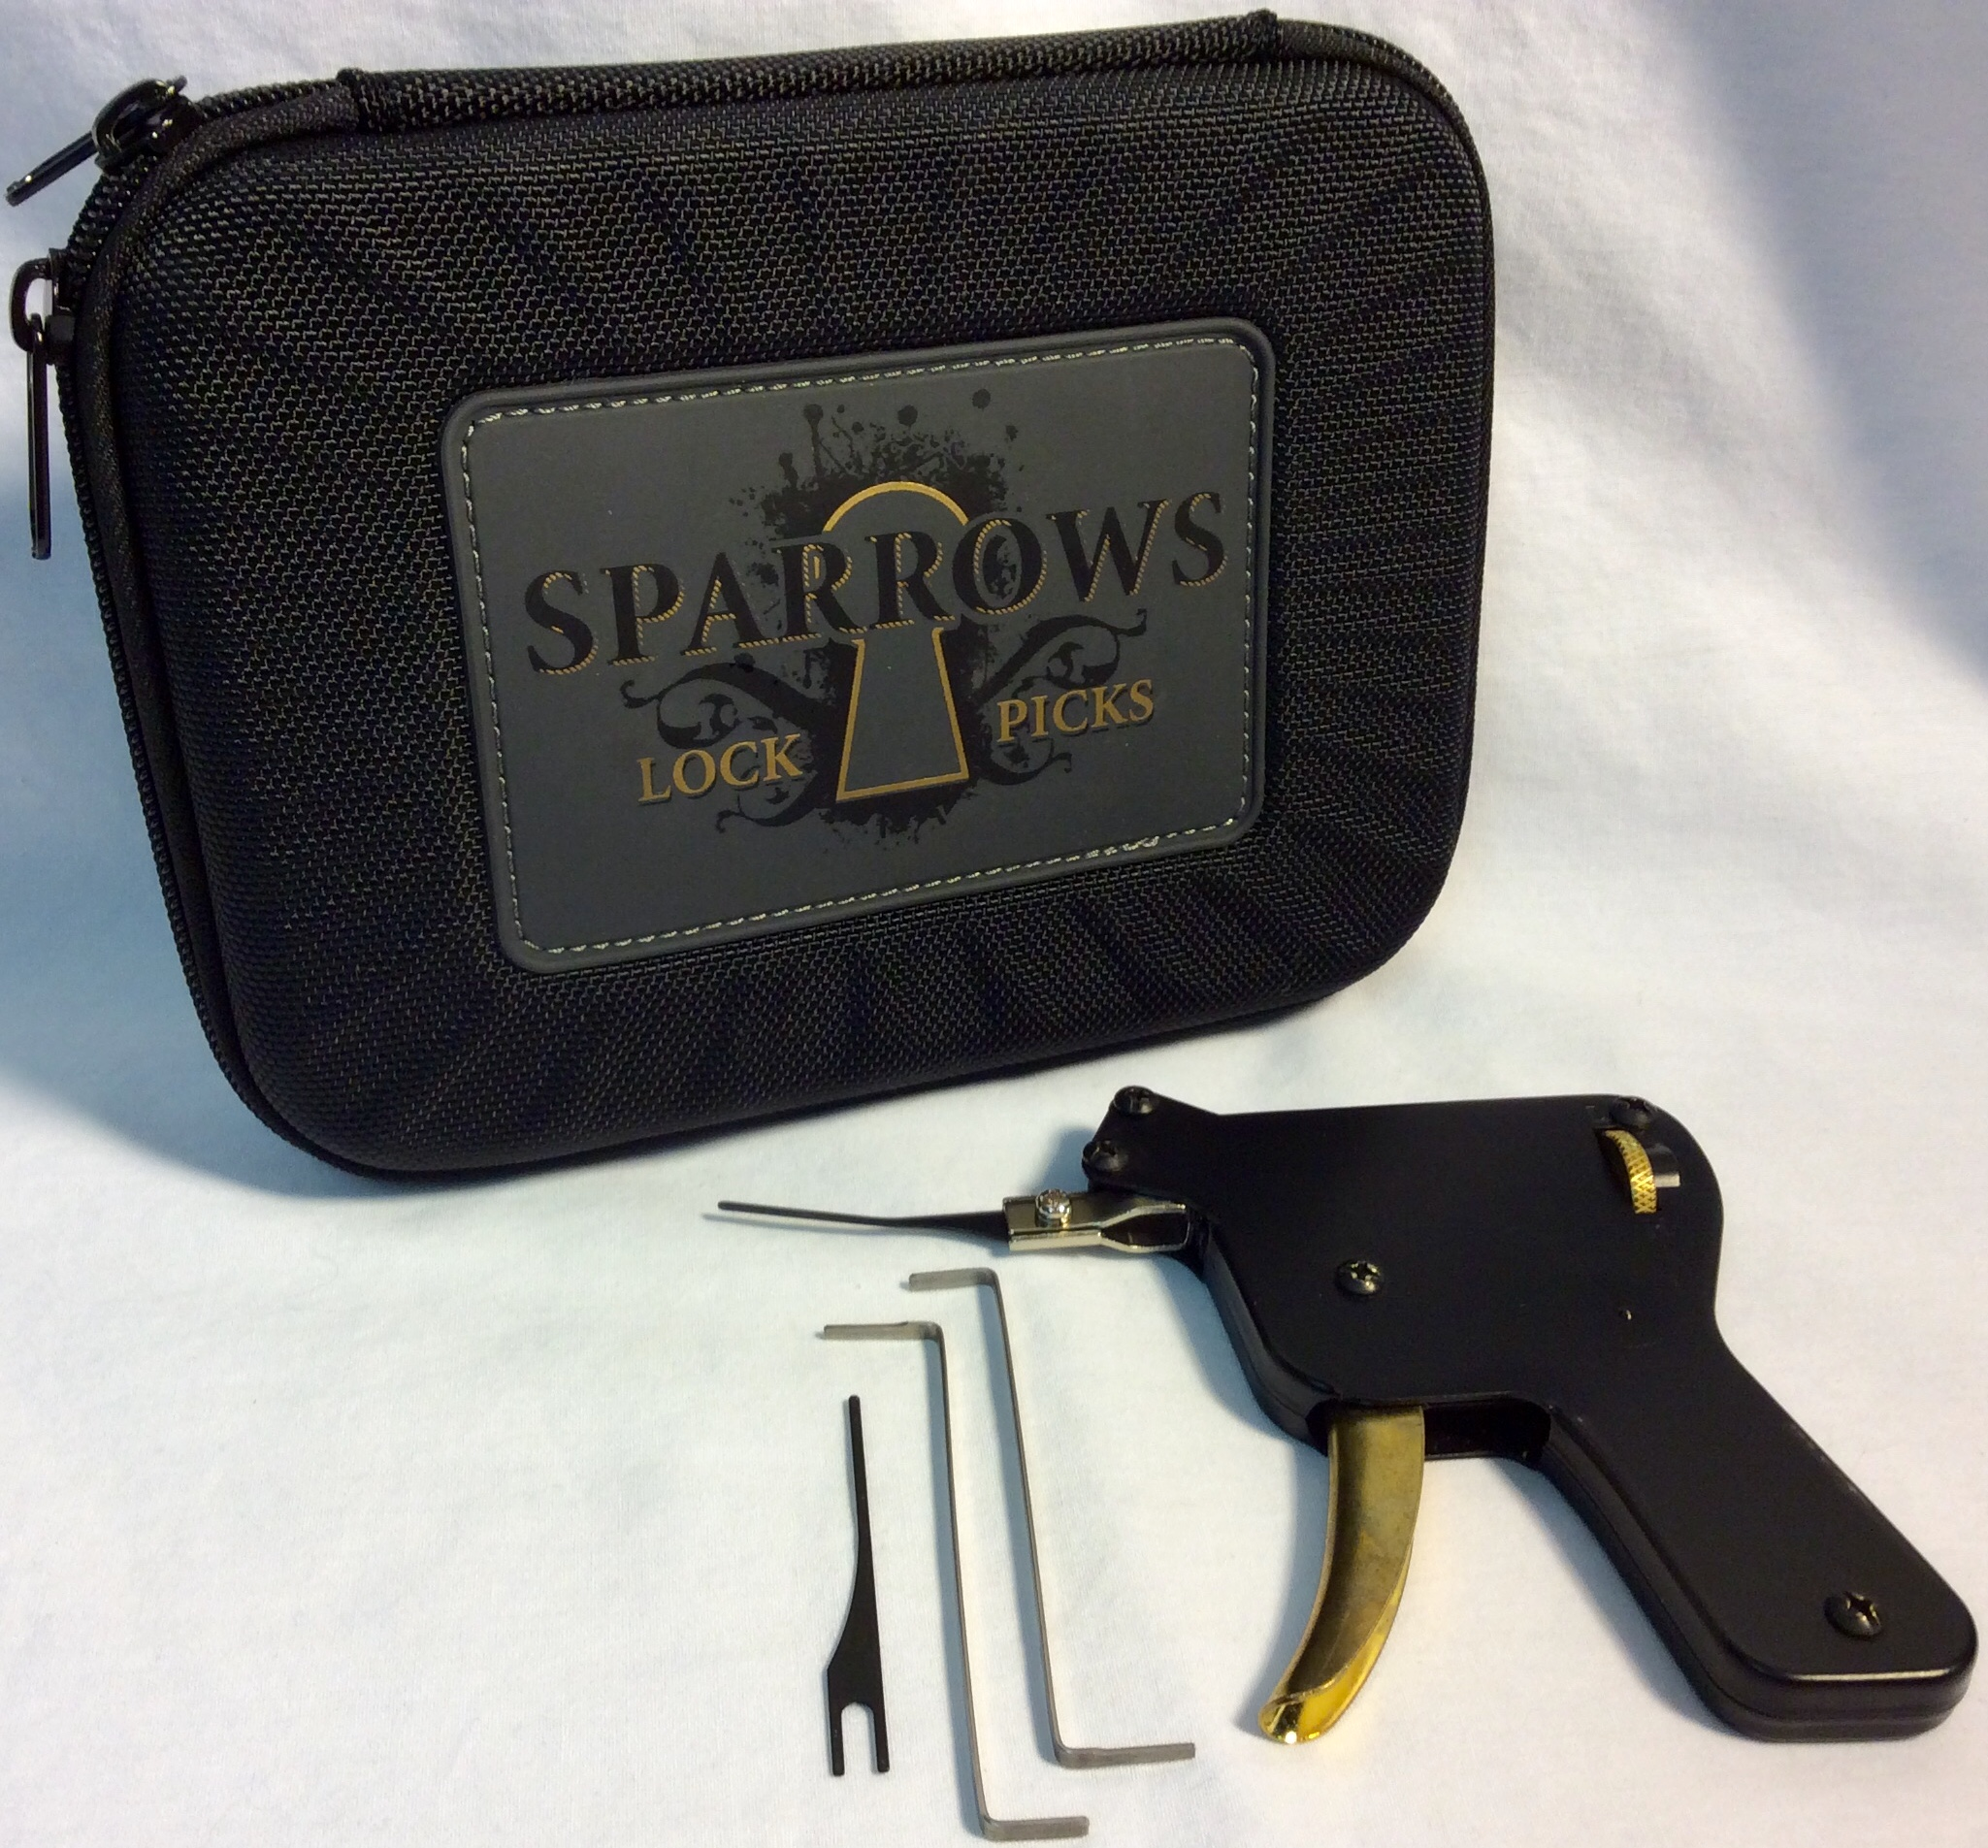 Southord Lock pick snap gun with accessories